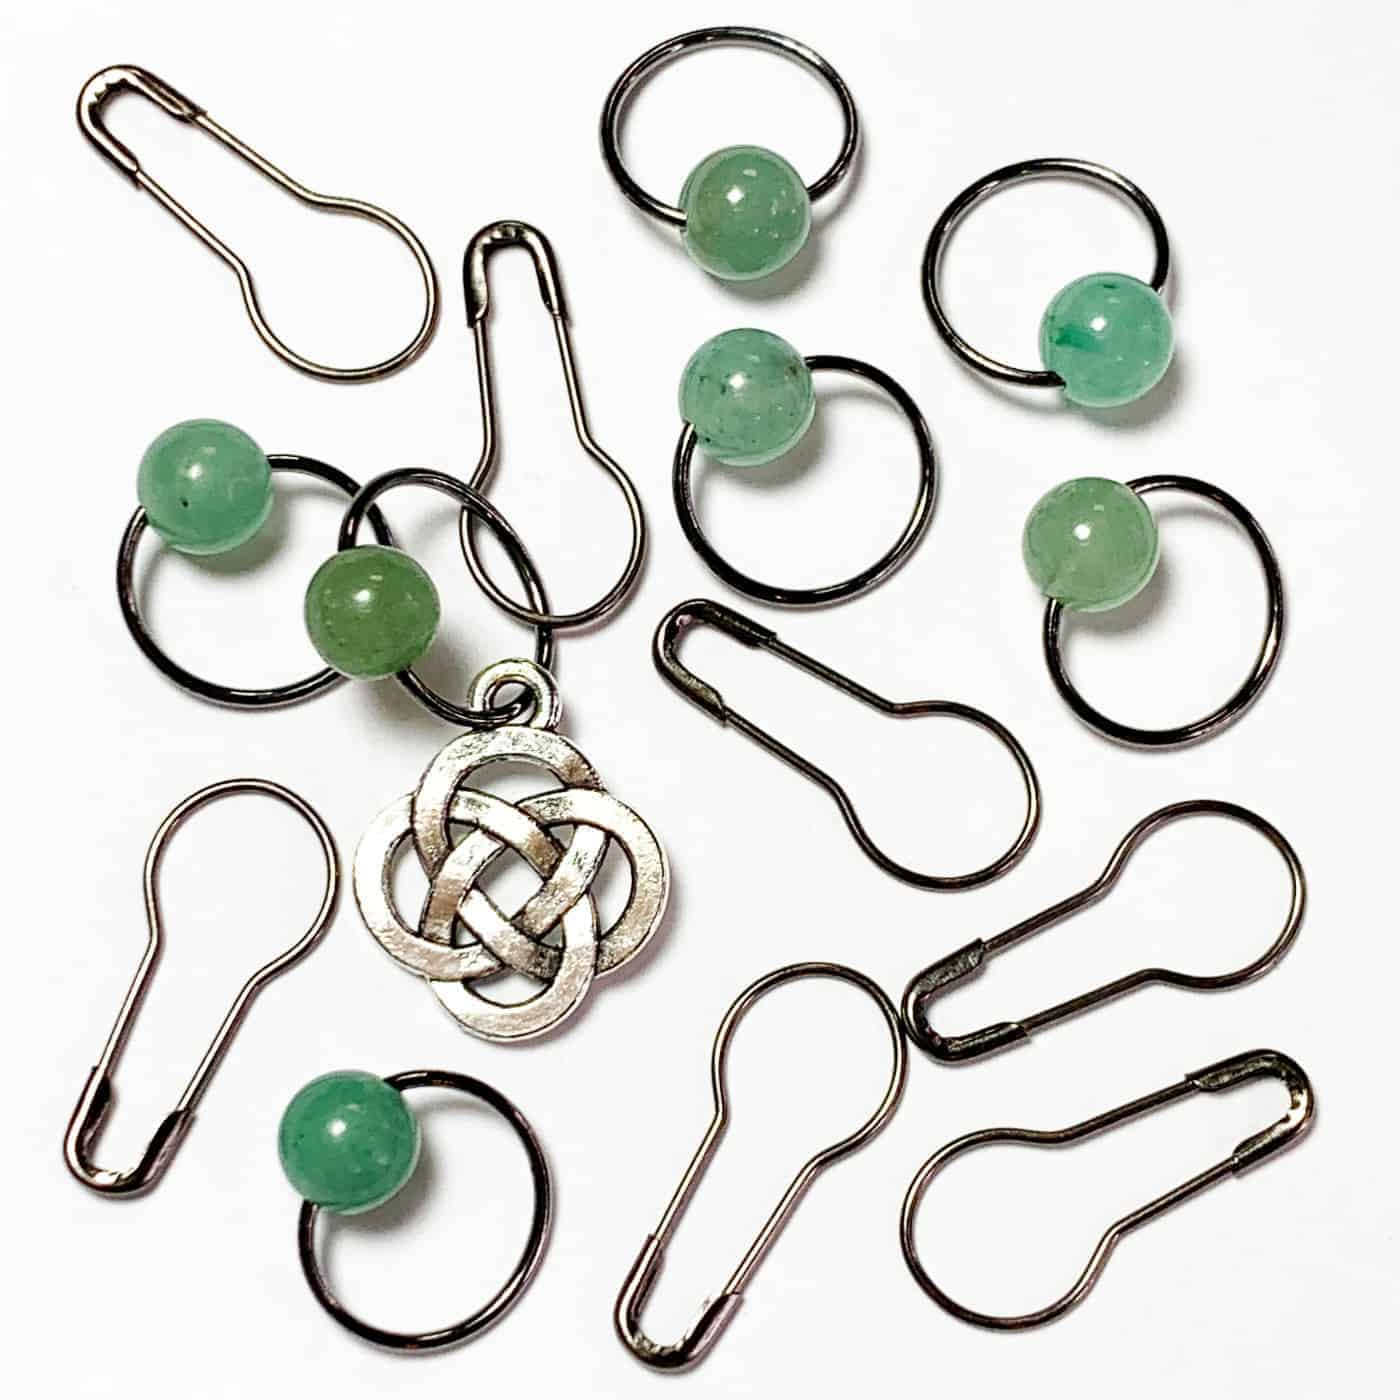 A silver Celtic knit and ring stitch markers with green beads.